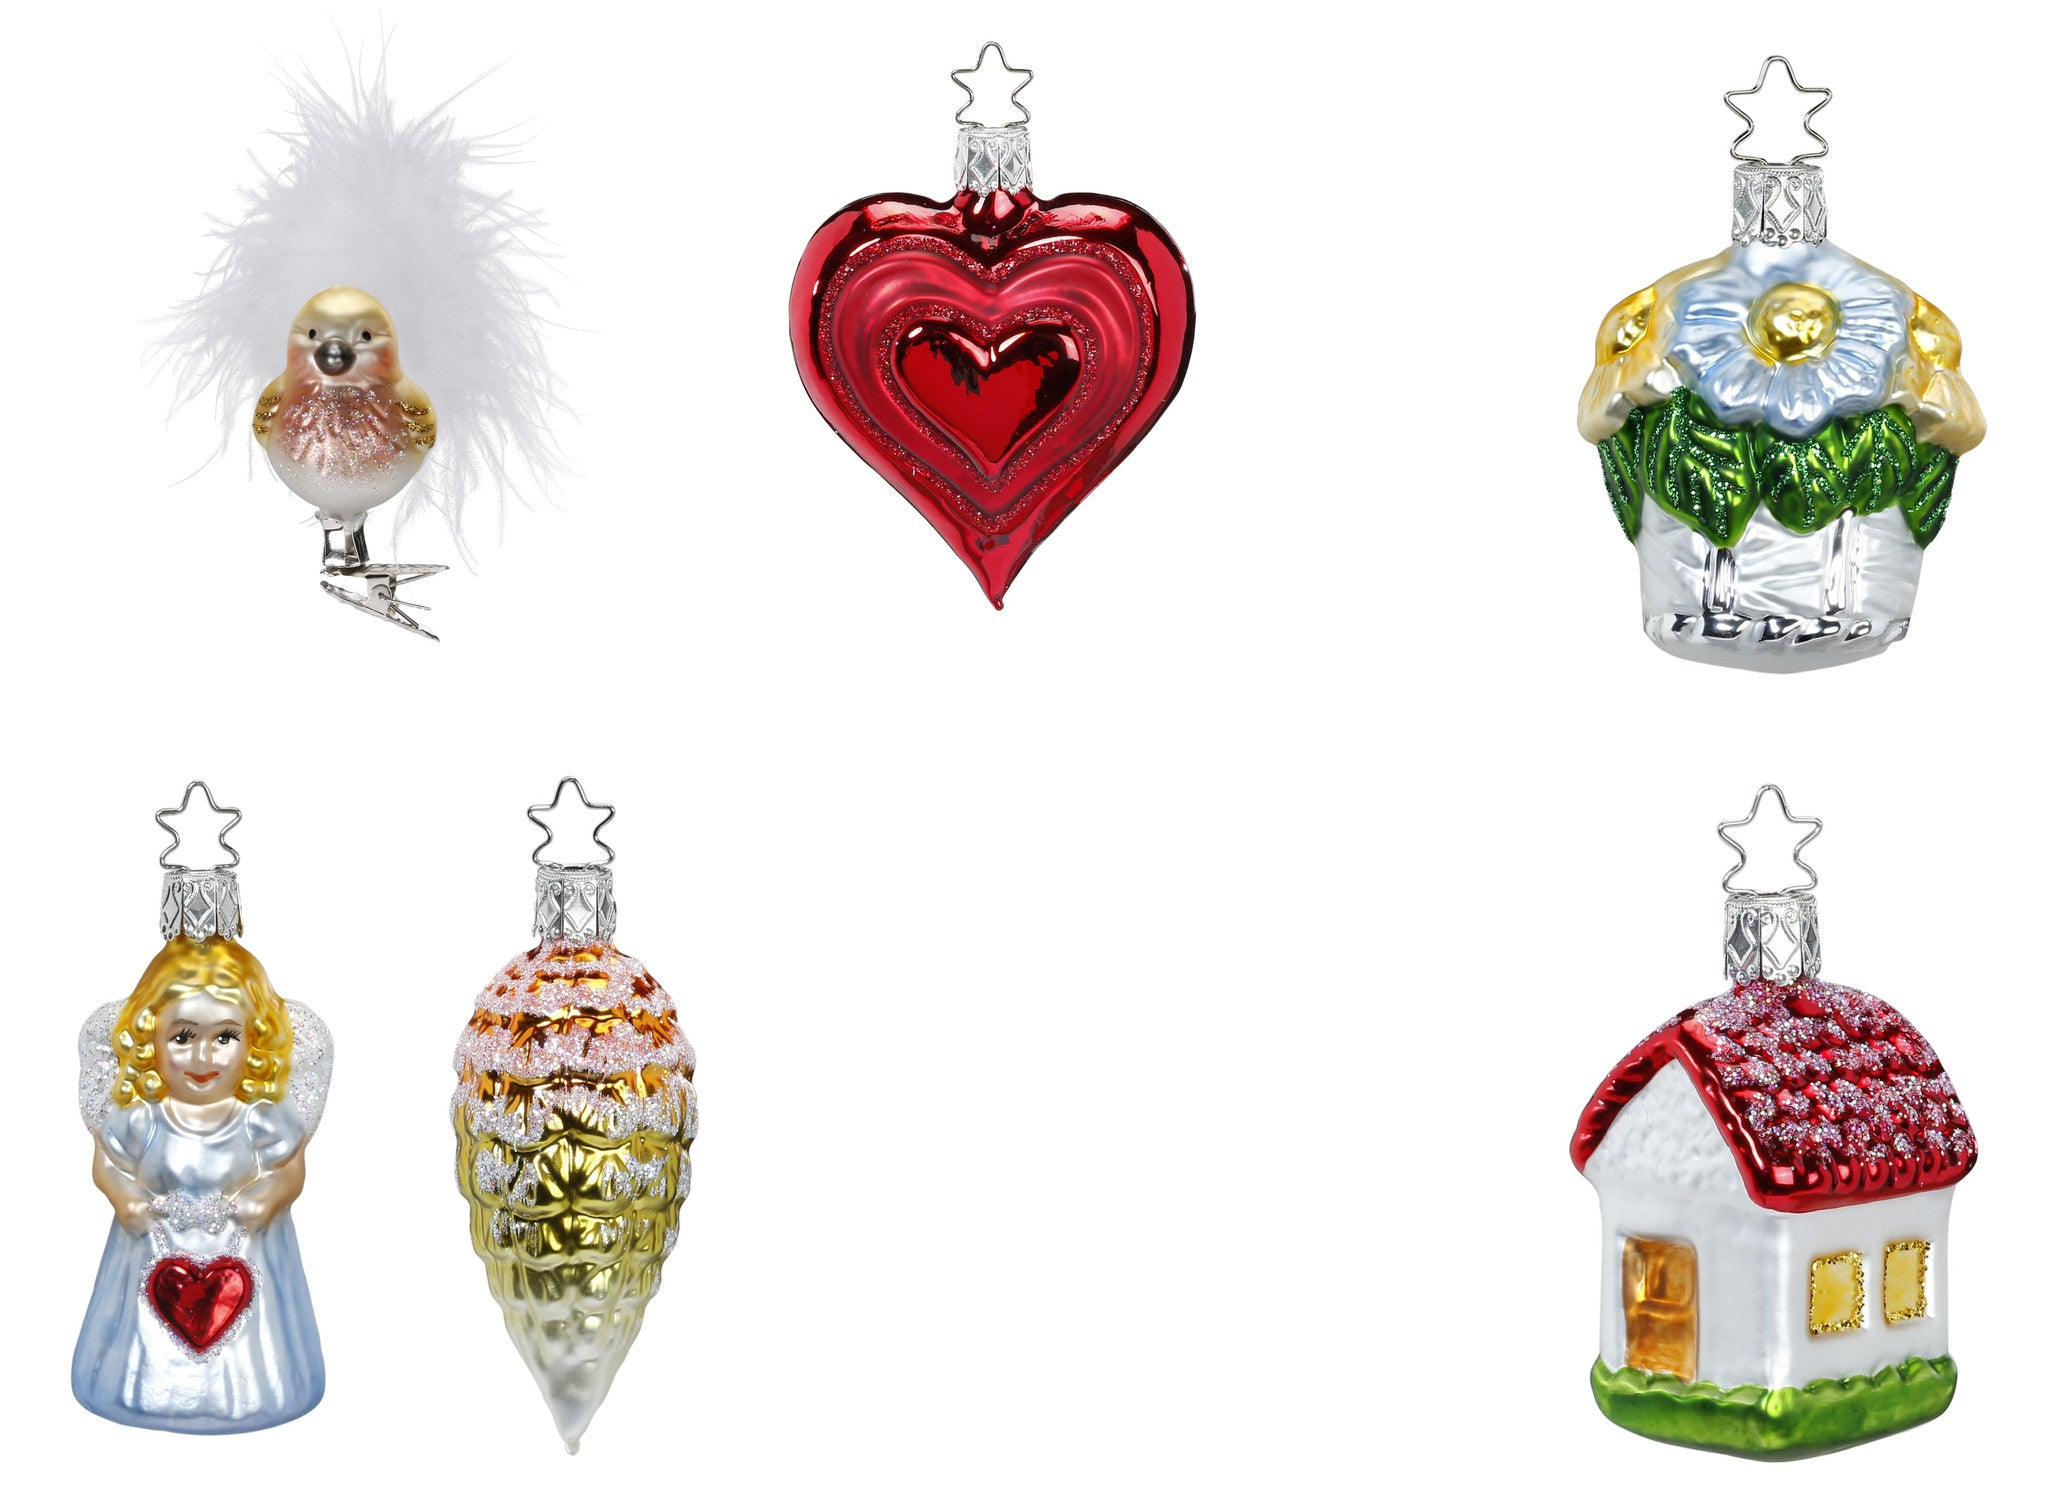 Bridal Collection - Full Size - 6 Ornaments - Presentation Box